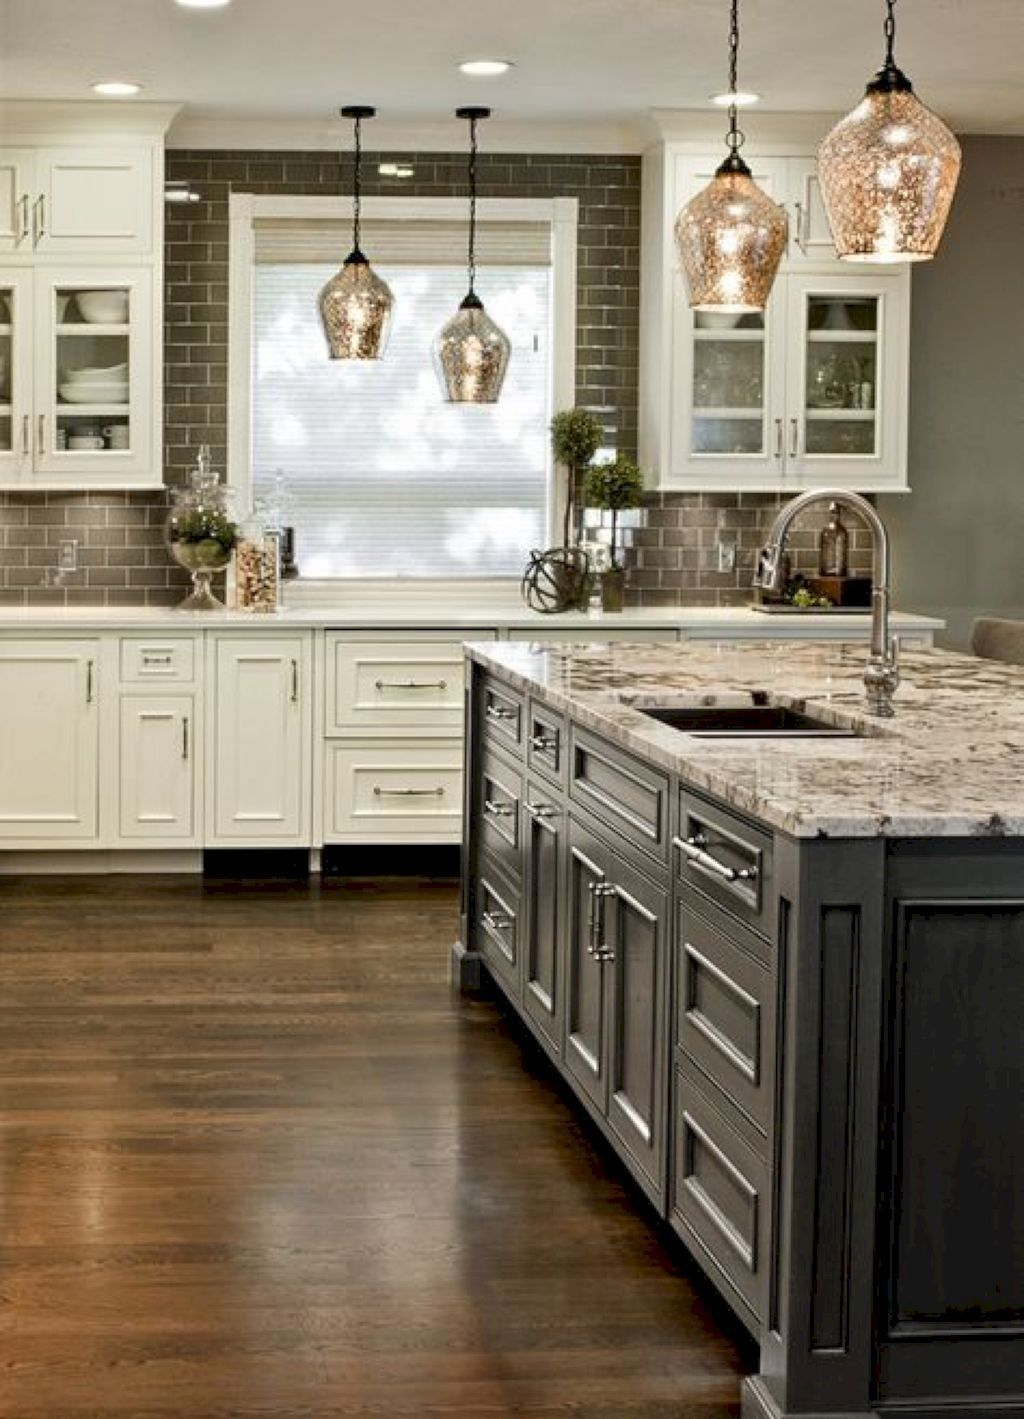 36 fantastic kitchen backsplash ideas modern kitchen design kitchen backsplash designs on farmhouse kitchen backsplash id=73986